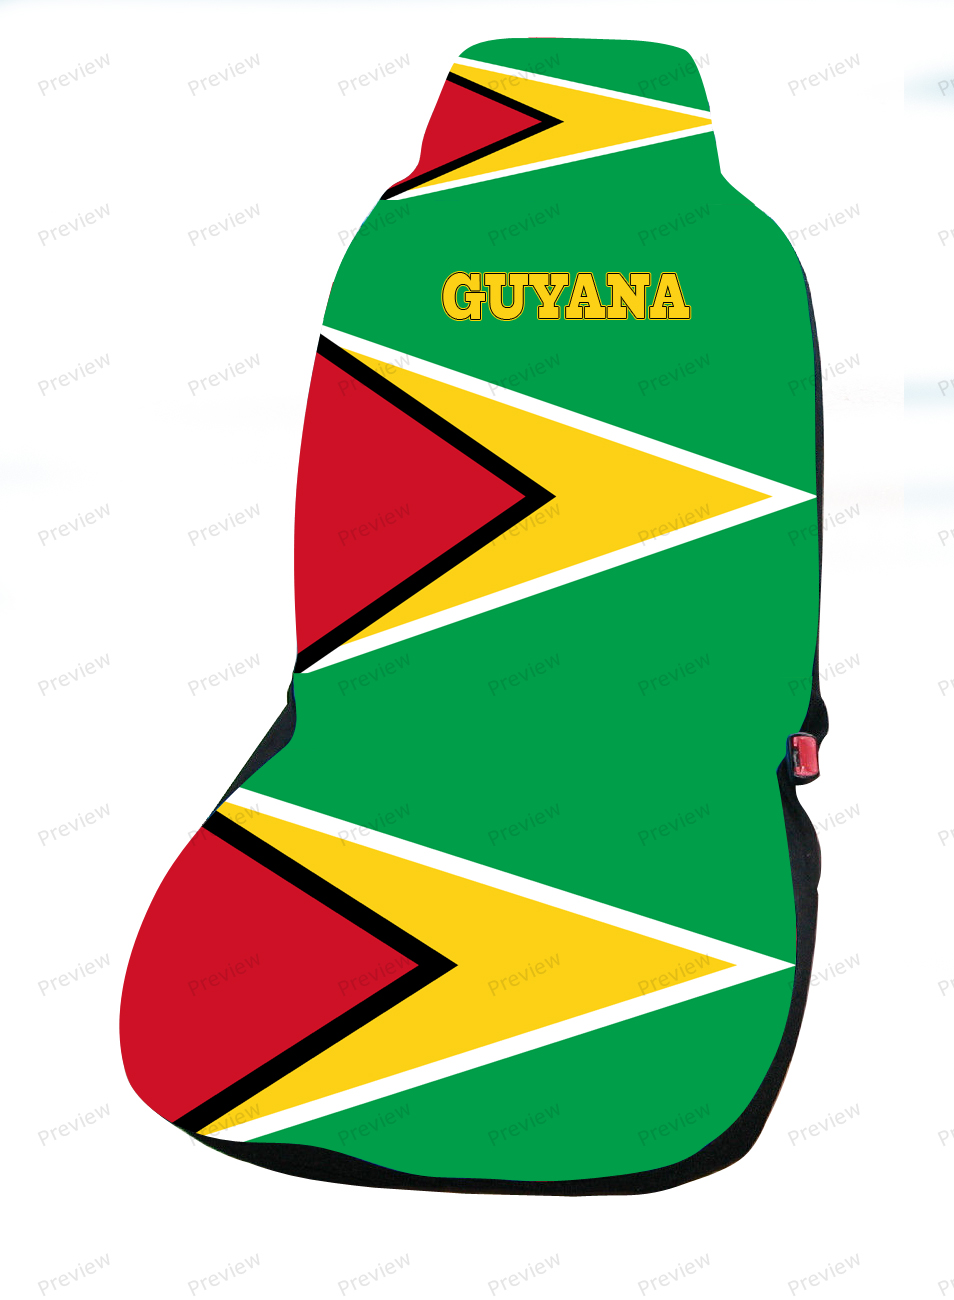 images/Guyana image car cover seat